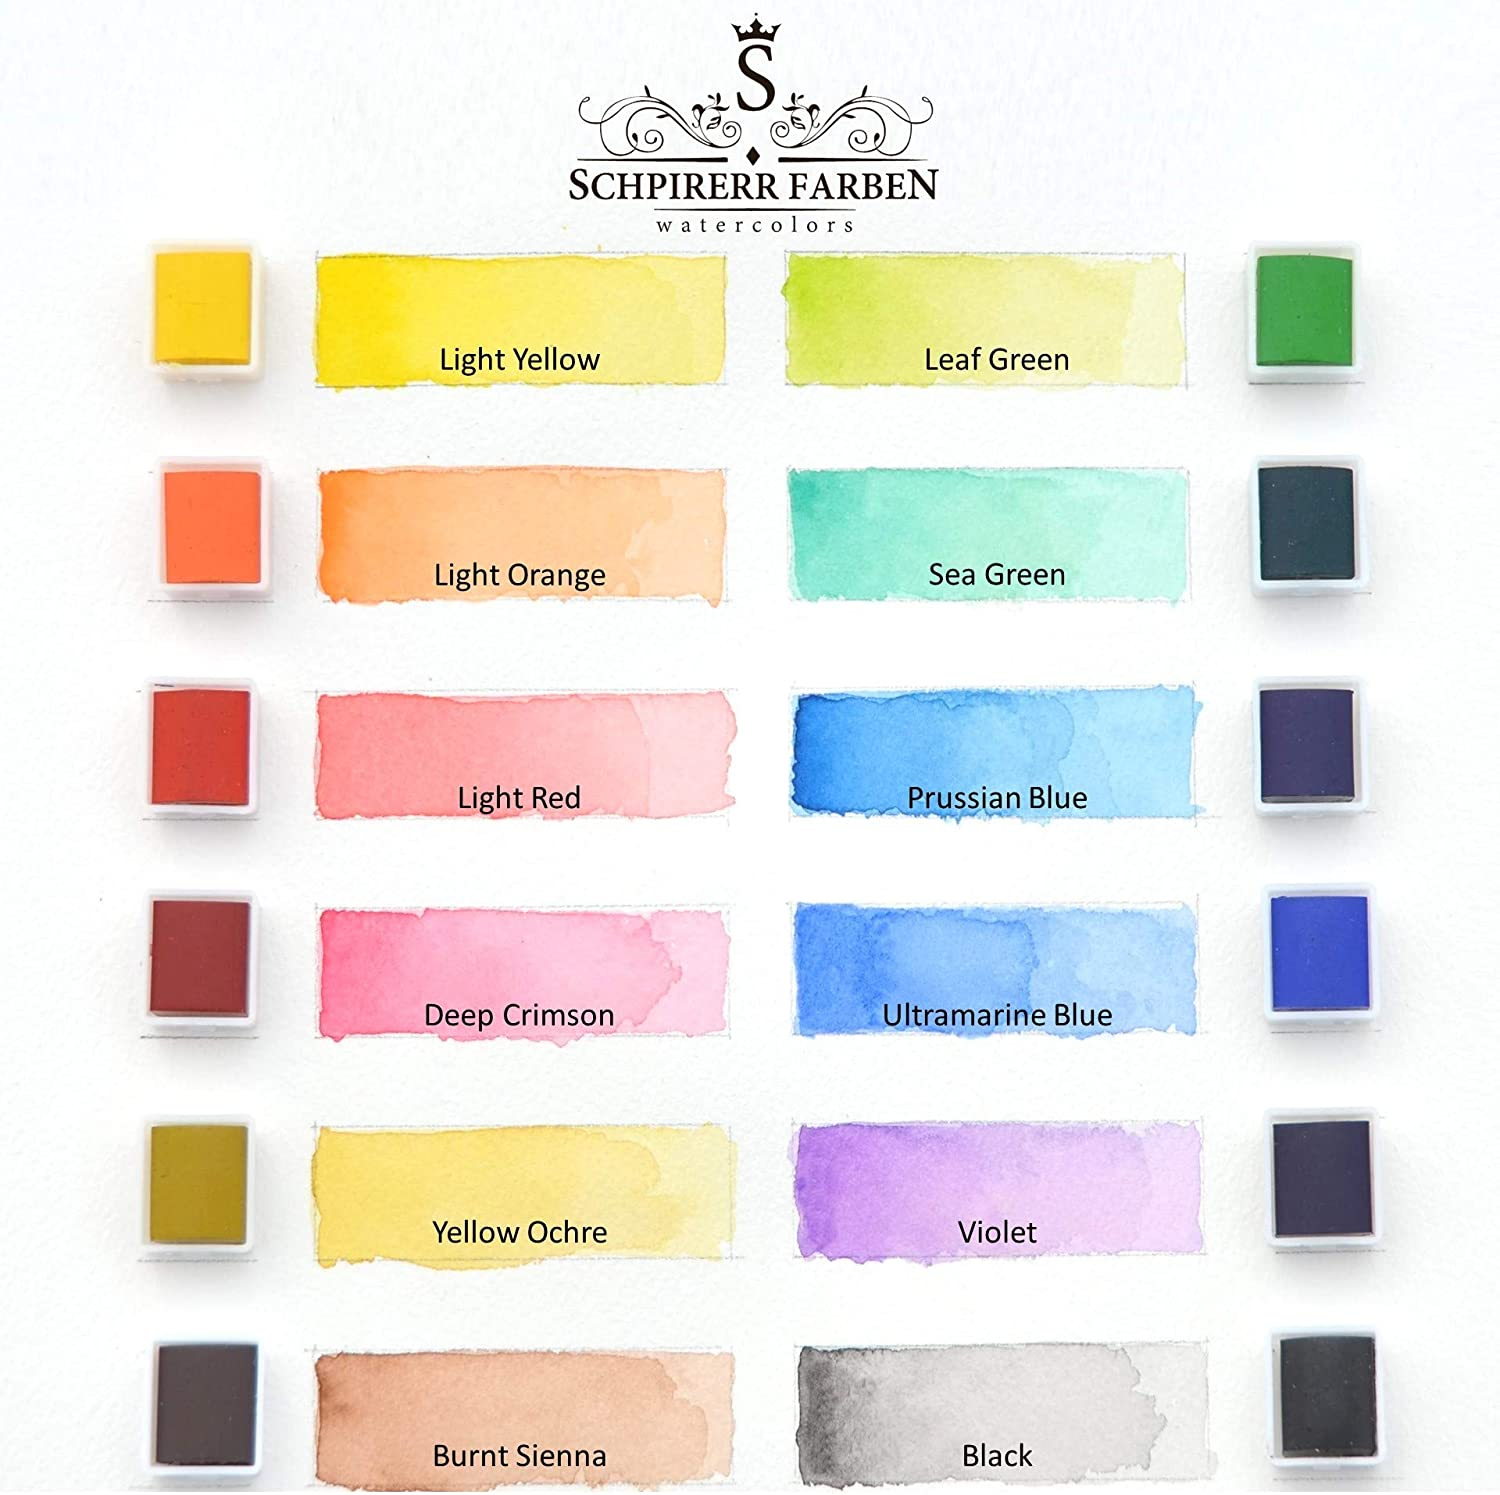 Get a bundle of SCHPIRERR FARBEN 72 Colored Pencils and 12 Watercolor Set for a reduced price